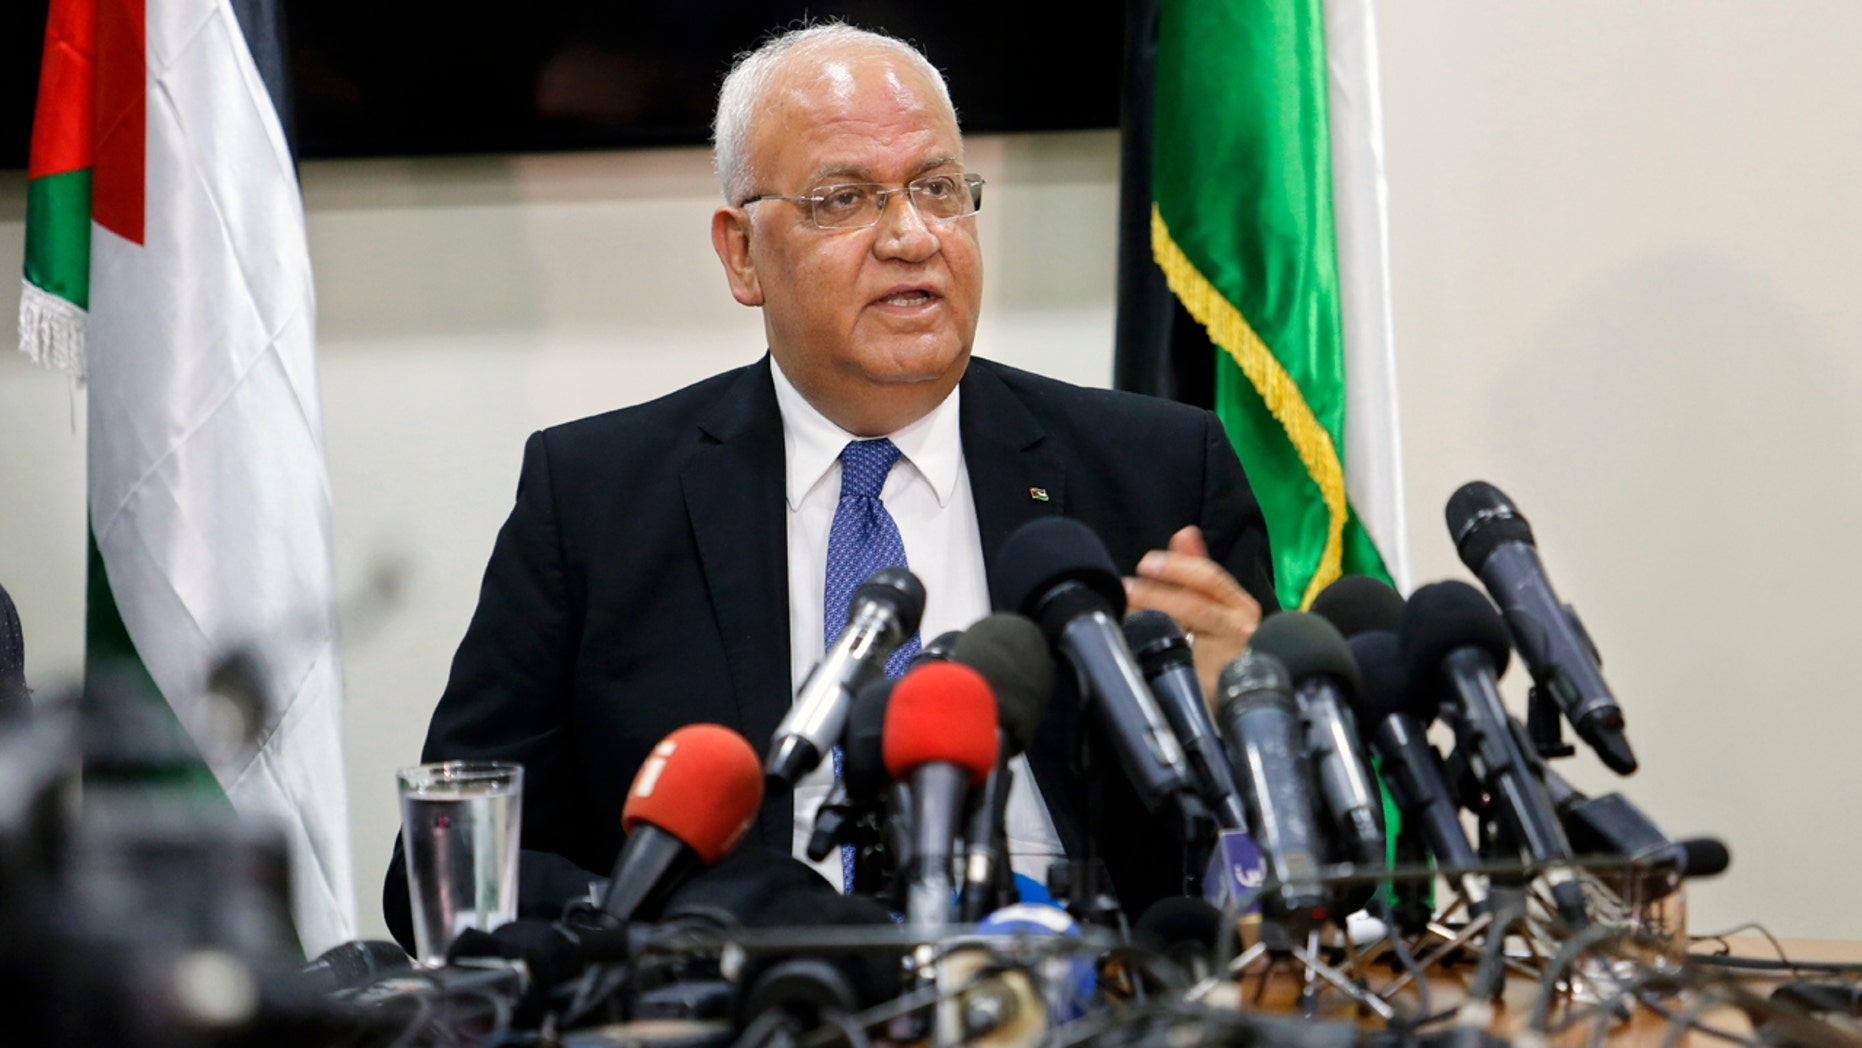 Saeb Erekat speaks to reporters in Ramallah Wednesday.